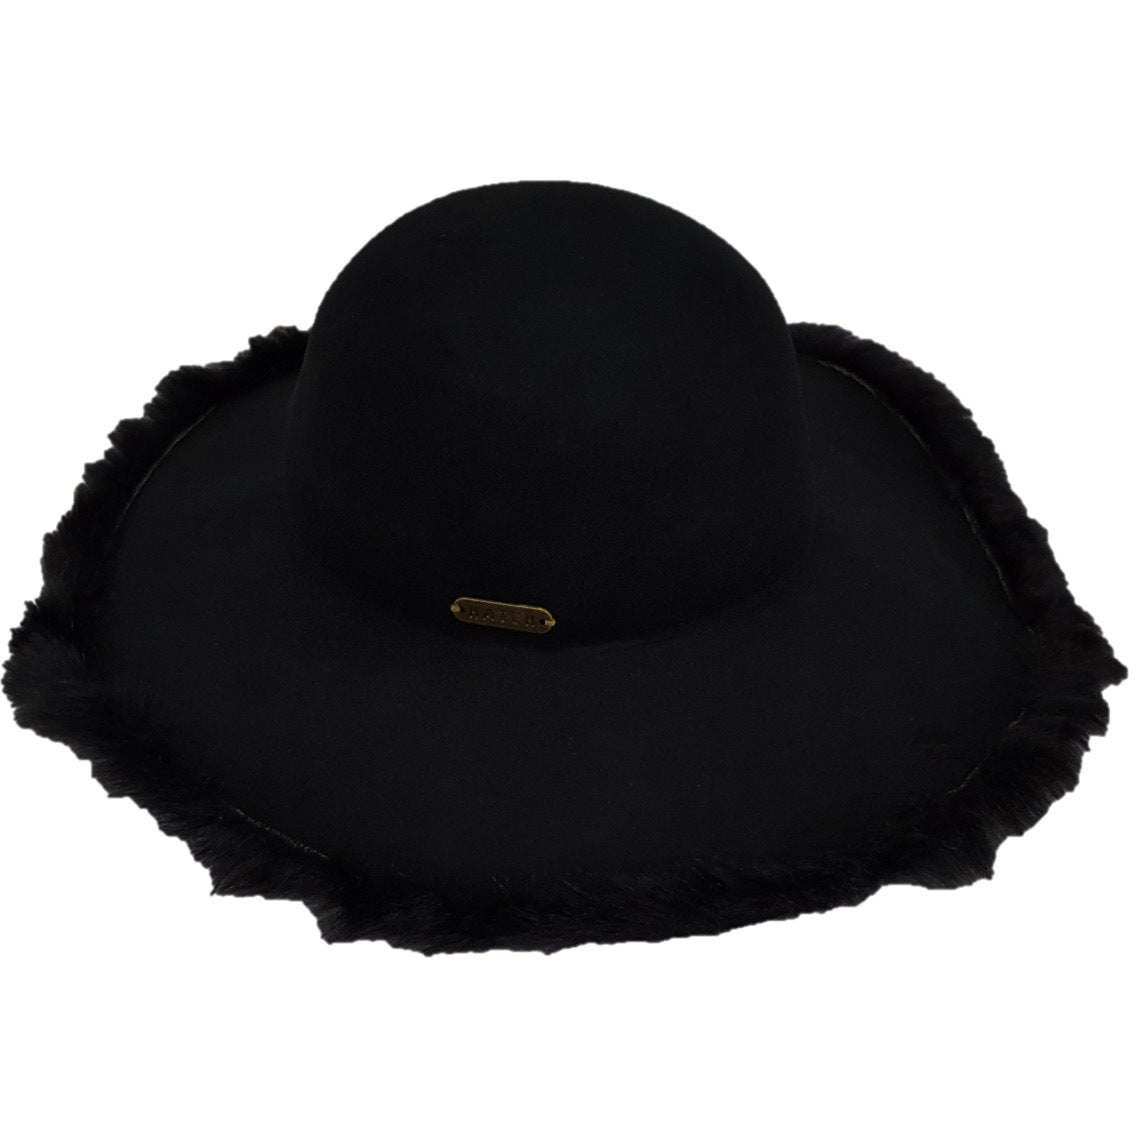 Shop Hatch Hats Fur Packable Wide Brim 100-percent Wool Felt Floppy Hat -  Ships To Canada - Overstock.ca - 13446447 5edd87cccb4c